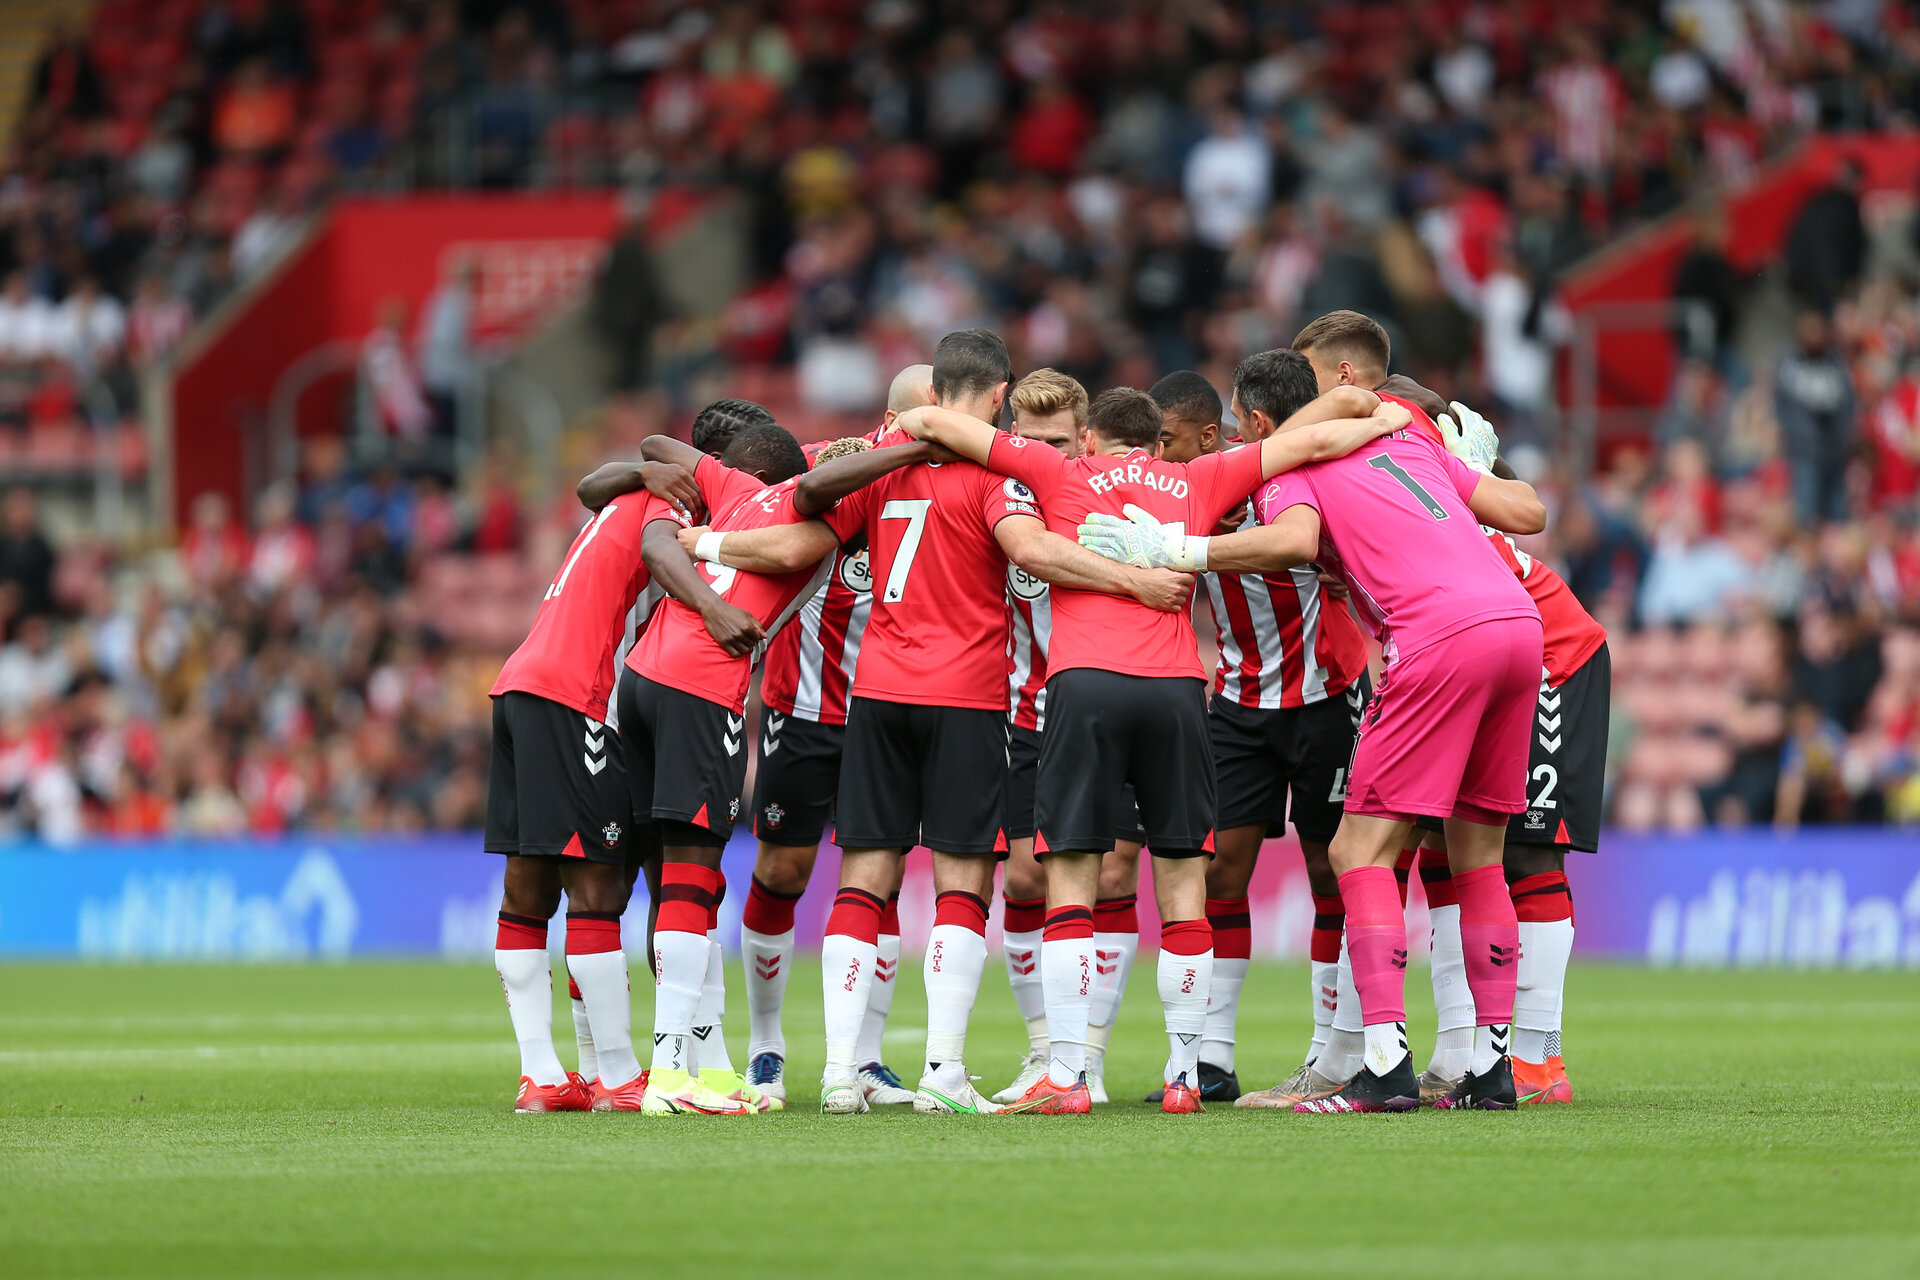 SOUTHAMPTON, ENGLAND - AUGUST 7: Saints huddle during the pre-season friendly match between Southampton and Athletic Club at St Mary's Stadium on August 7th, 2021, in Southampton, United Kingdom. (Photo by Chris Moorhouse/Southampton FC via Getty Images)